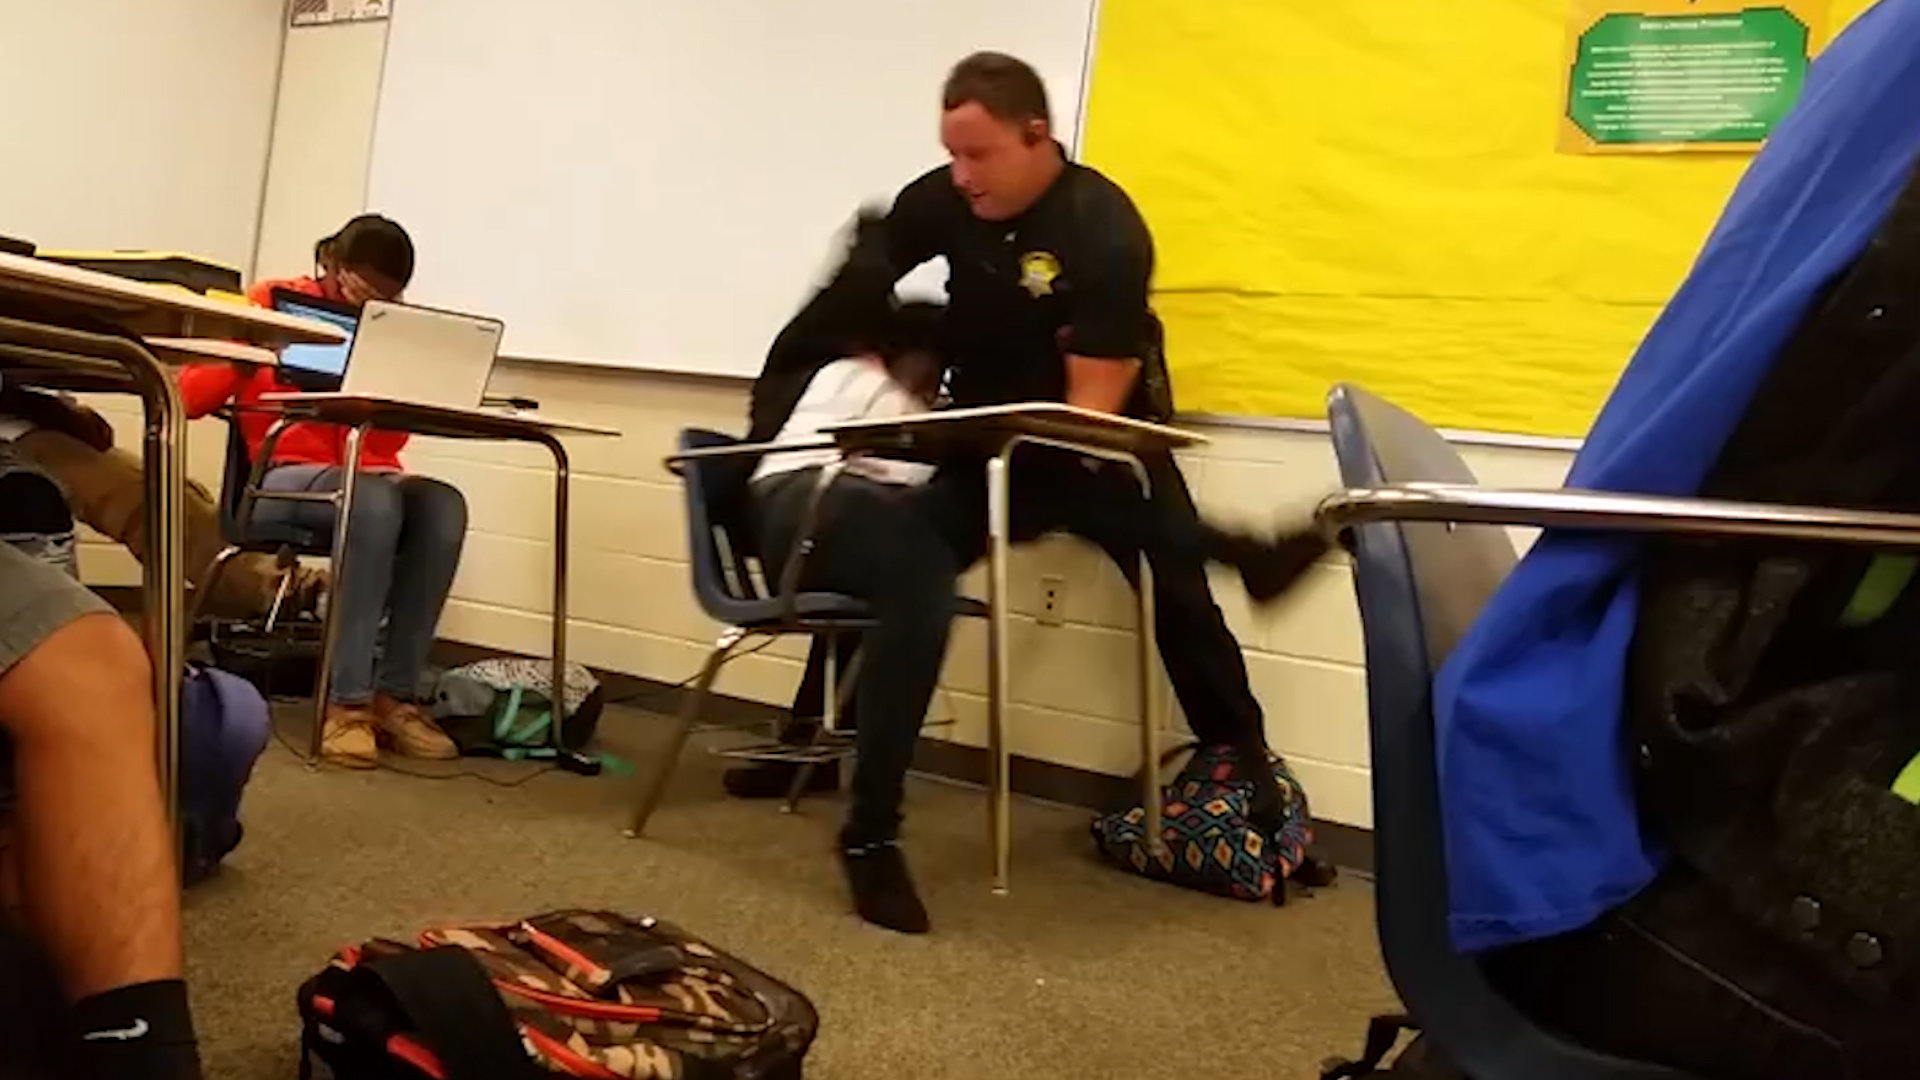 Deputy Who Tossed a SC High School Student Wont Be